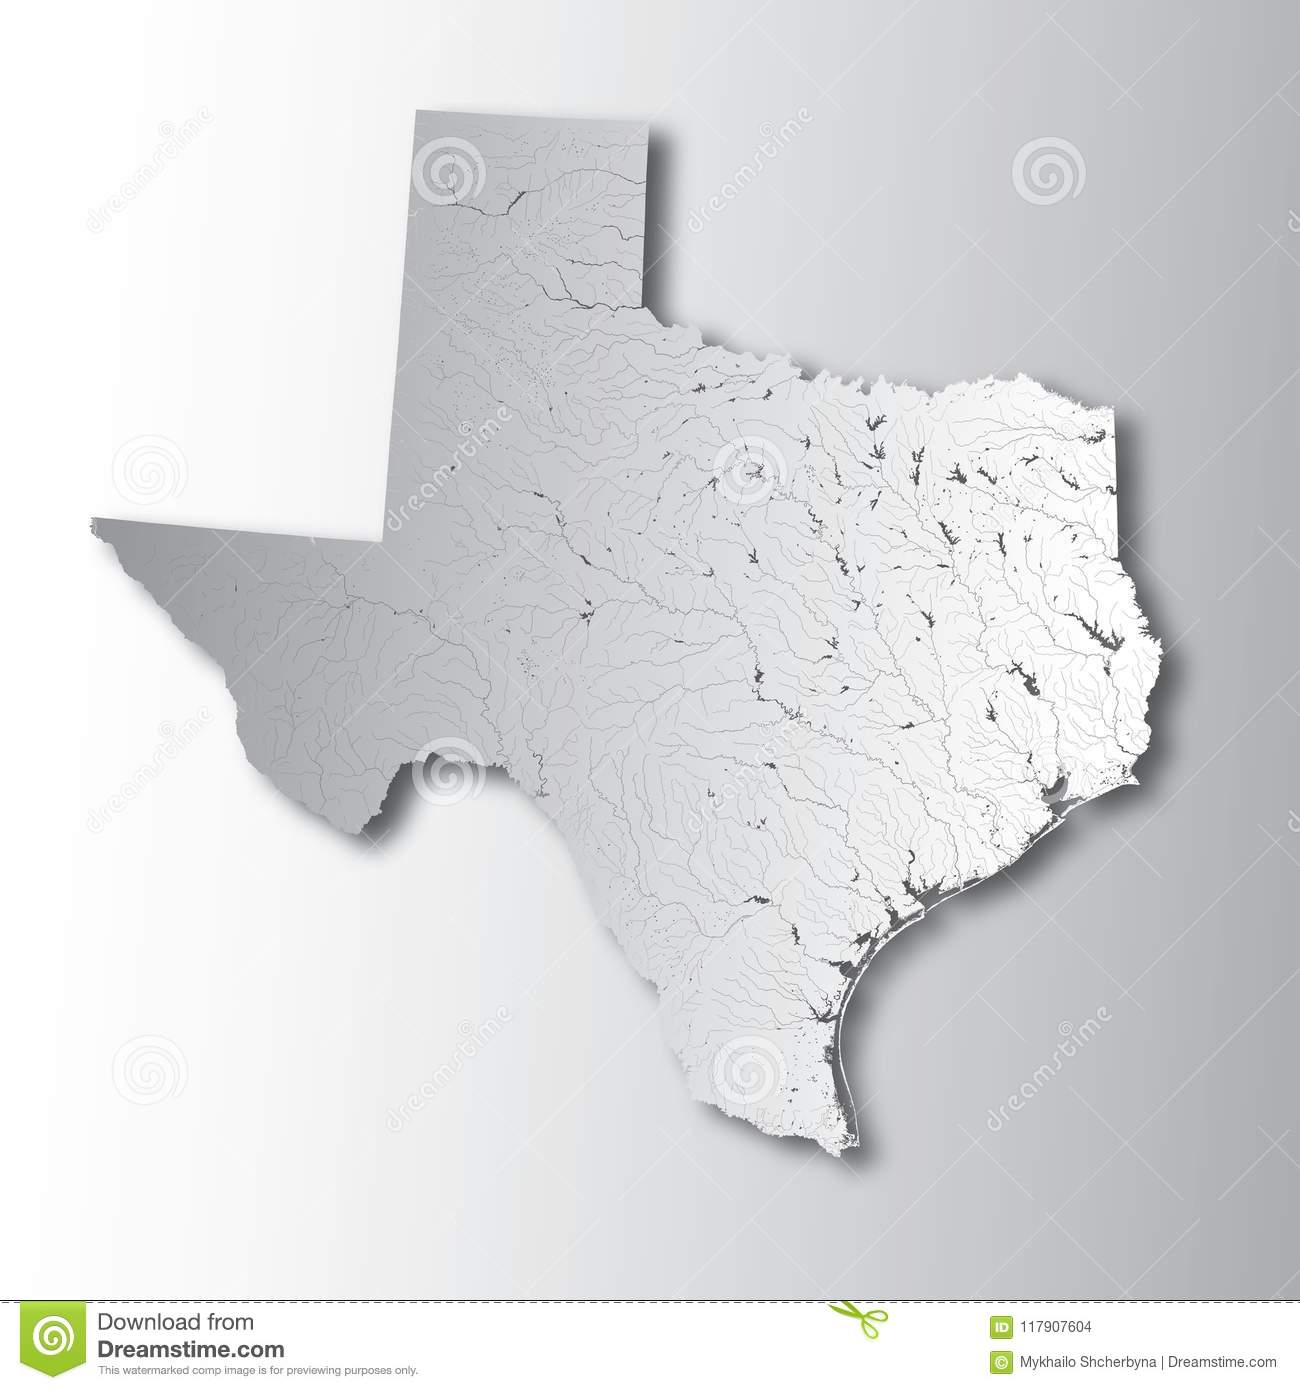 Map Of Texas Rivers And Lakes.Map Of Texas With Lakes And Rivers Stock Vector Illustration Of